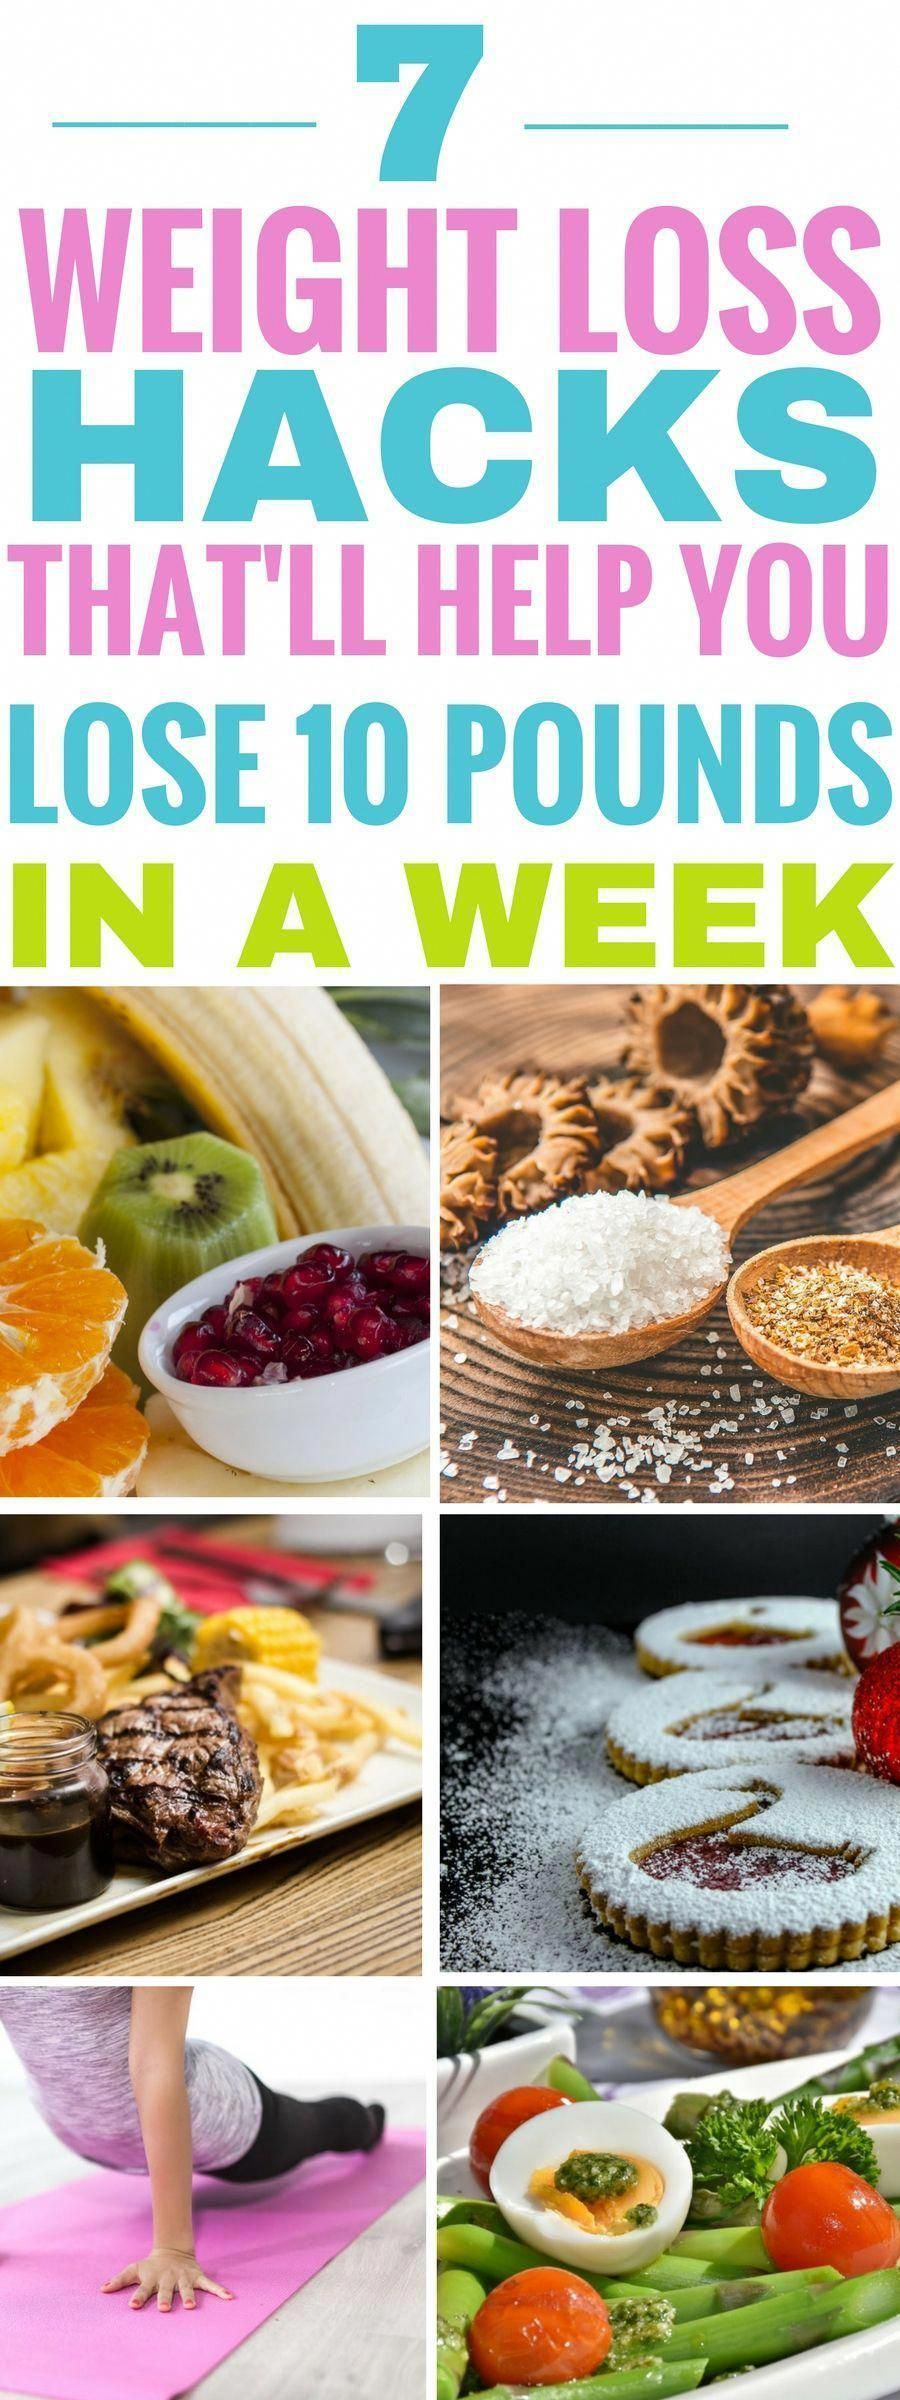 Diet for fast weight loss tips #rapidweightloss :) | fastest proven way to lose weight fast#lifestyle #lowcarb #goals #FastestAndEasiestWayToLoseWeight